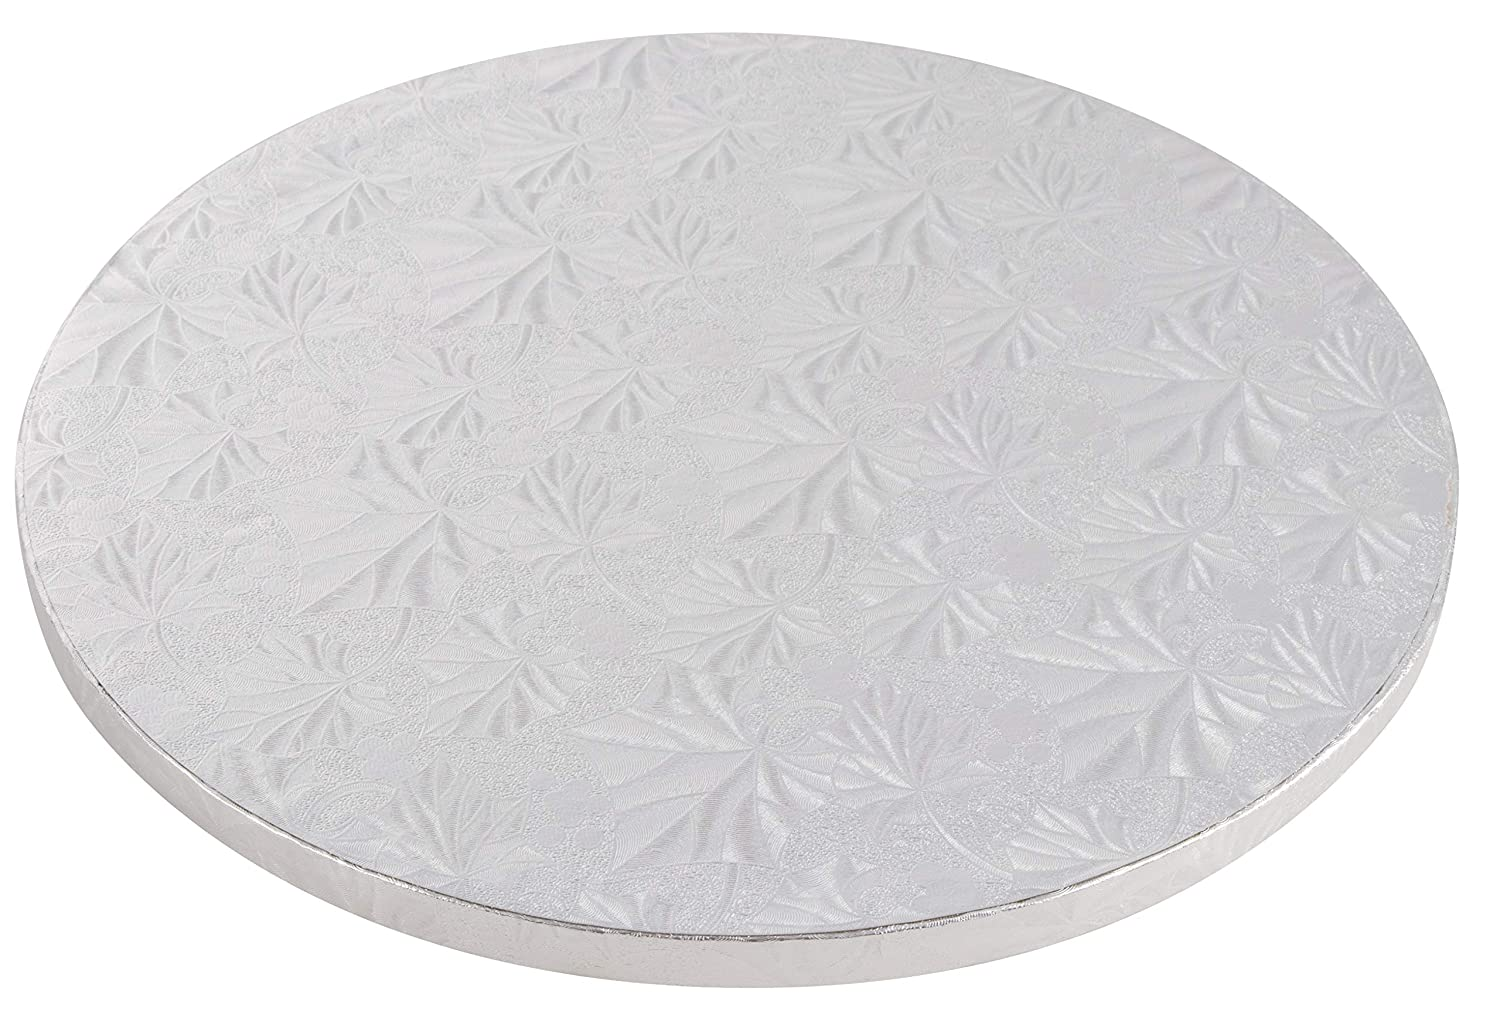 3 Piece Set of Silver Foil Pizza Base Disposable Drum Circles 12 Inch Diameter FDA approved Corrugated Paper Board Cake Cardboard Rounds